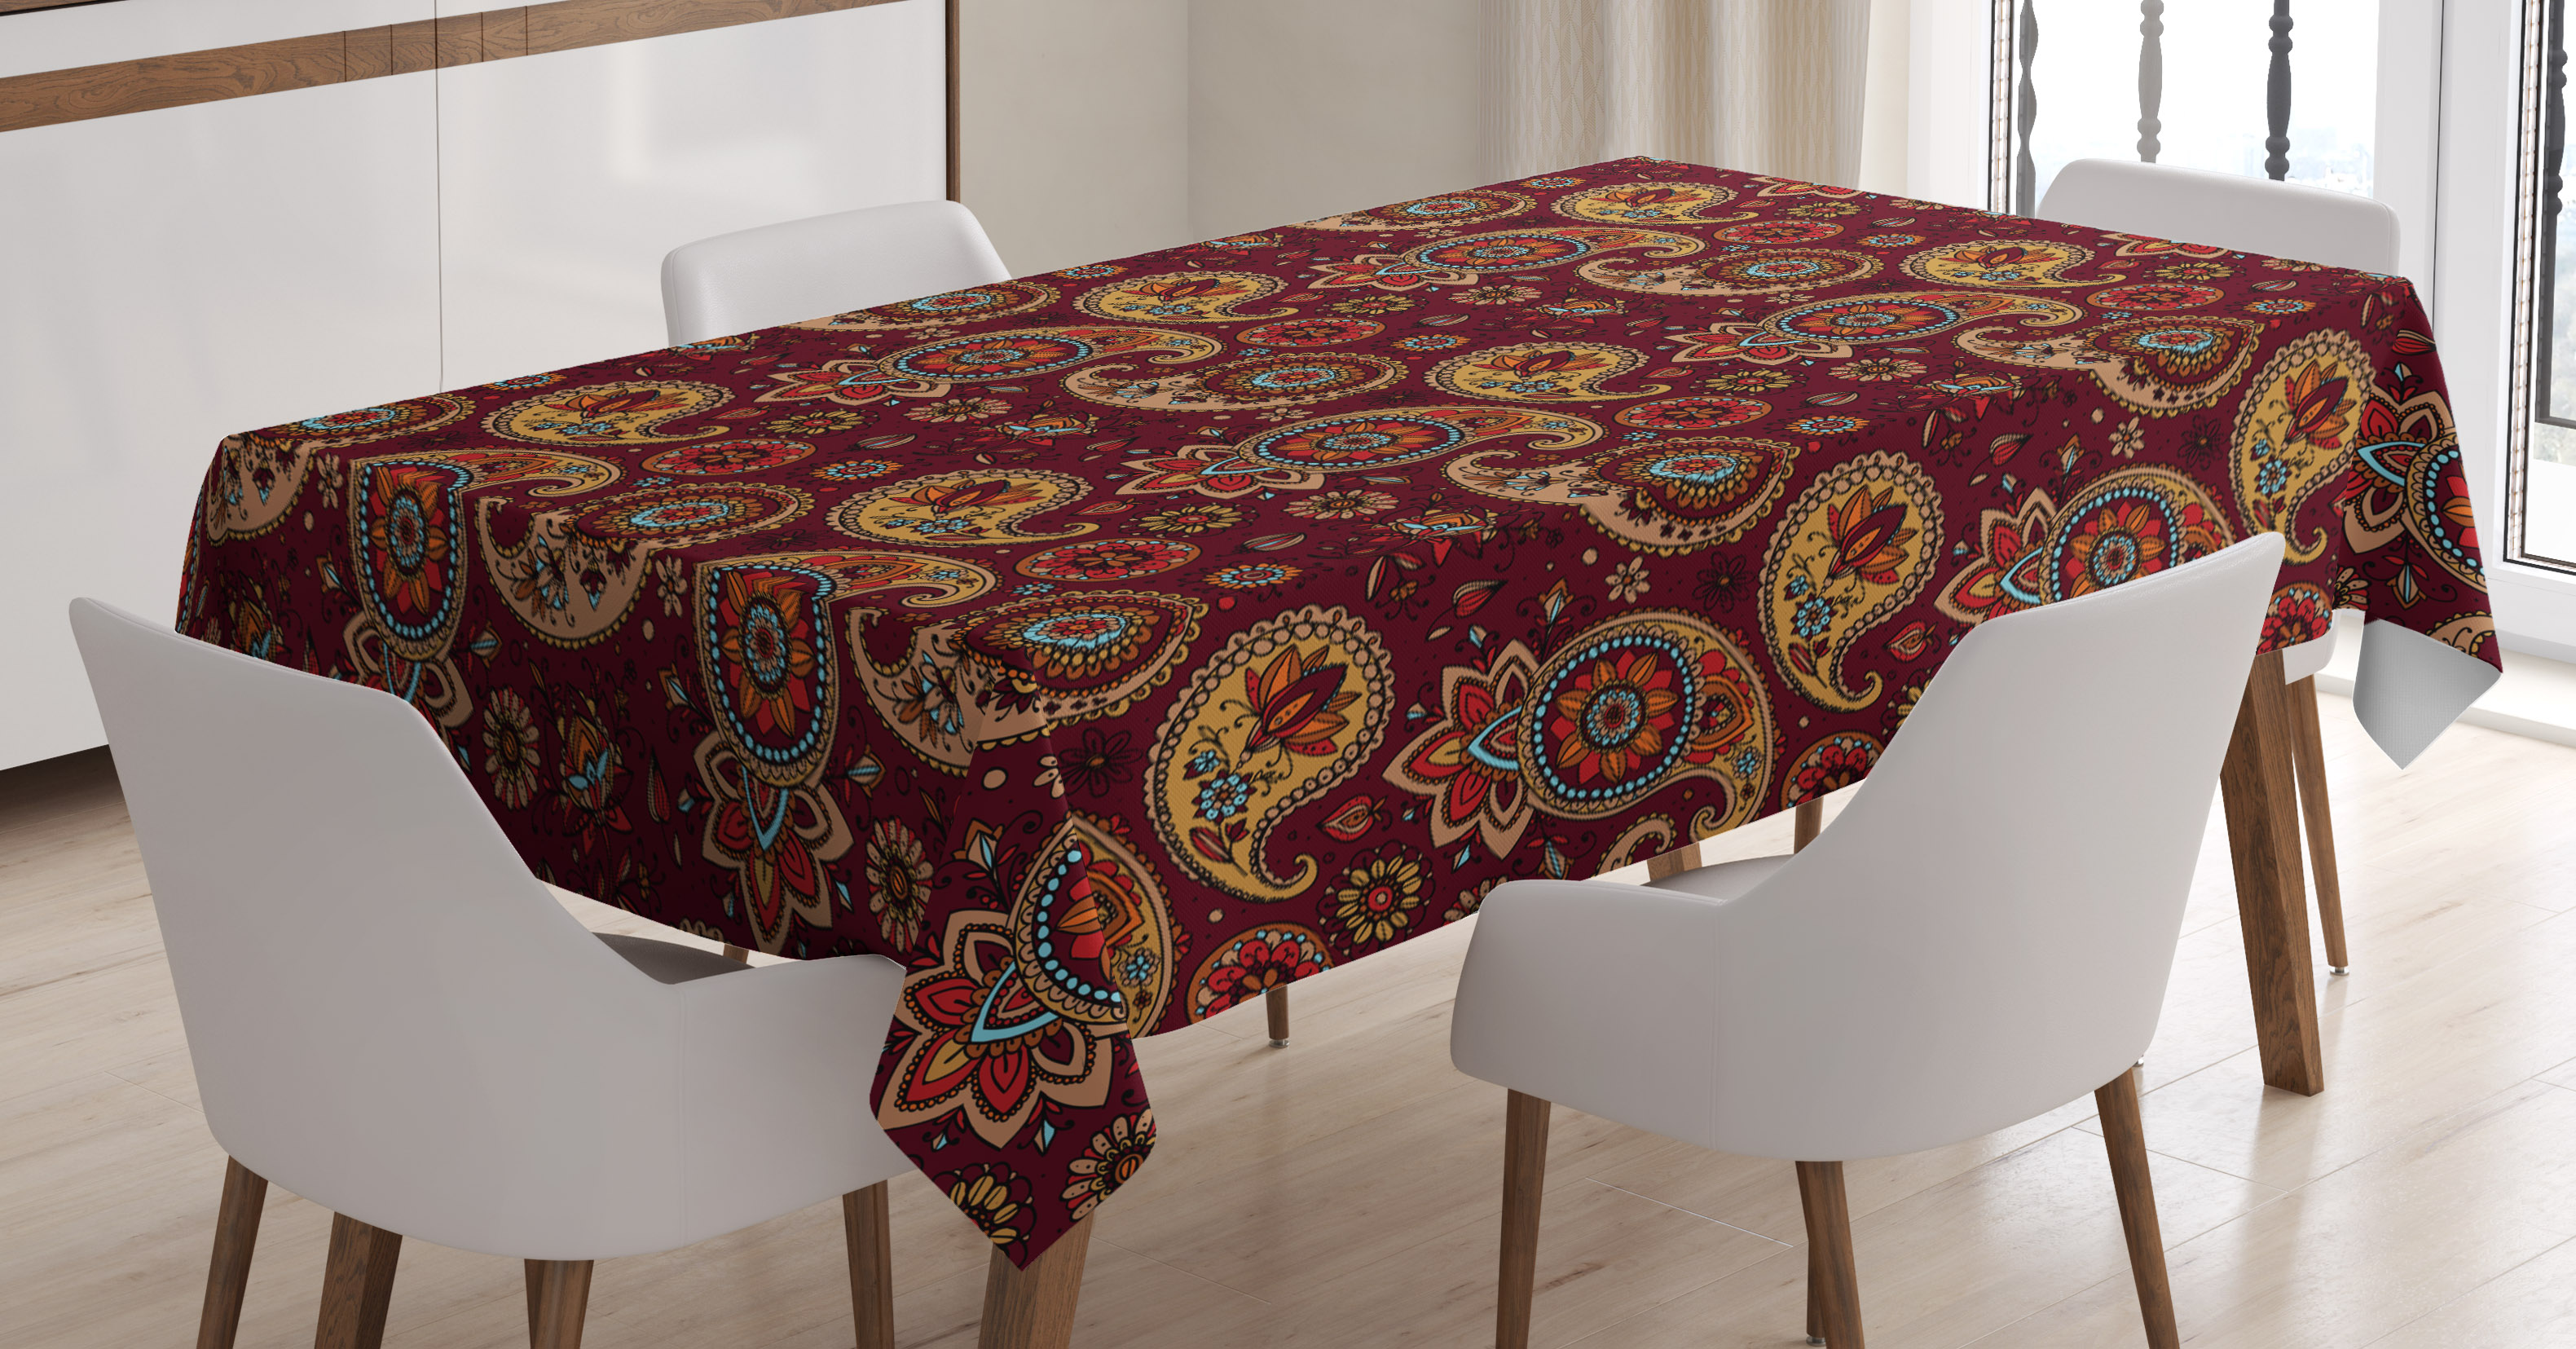 Paisley Tablecloth, Middle Eastern Culture Stylized Pattern Tribual Artwork  Bohemian, Rectangular Table Cover For